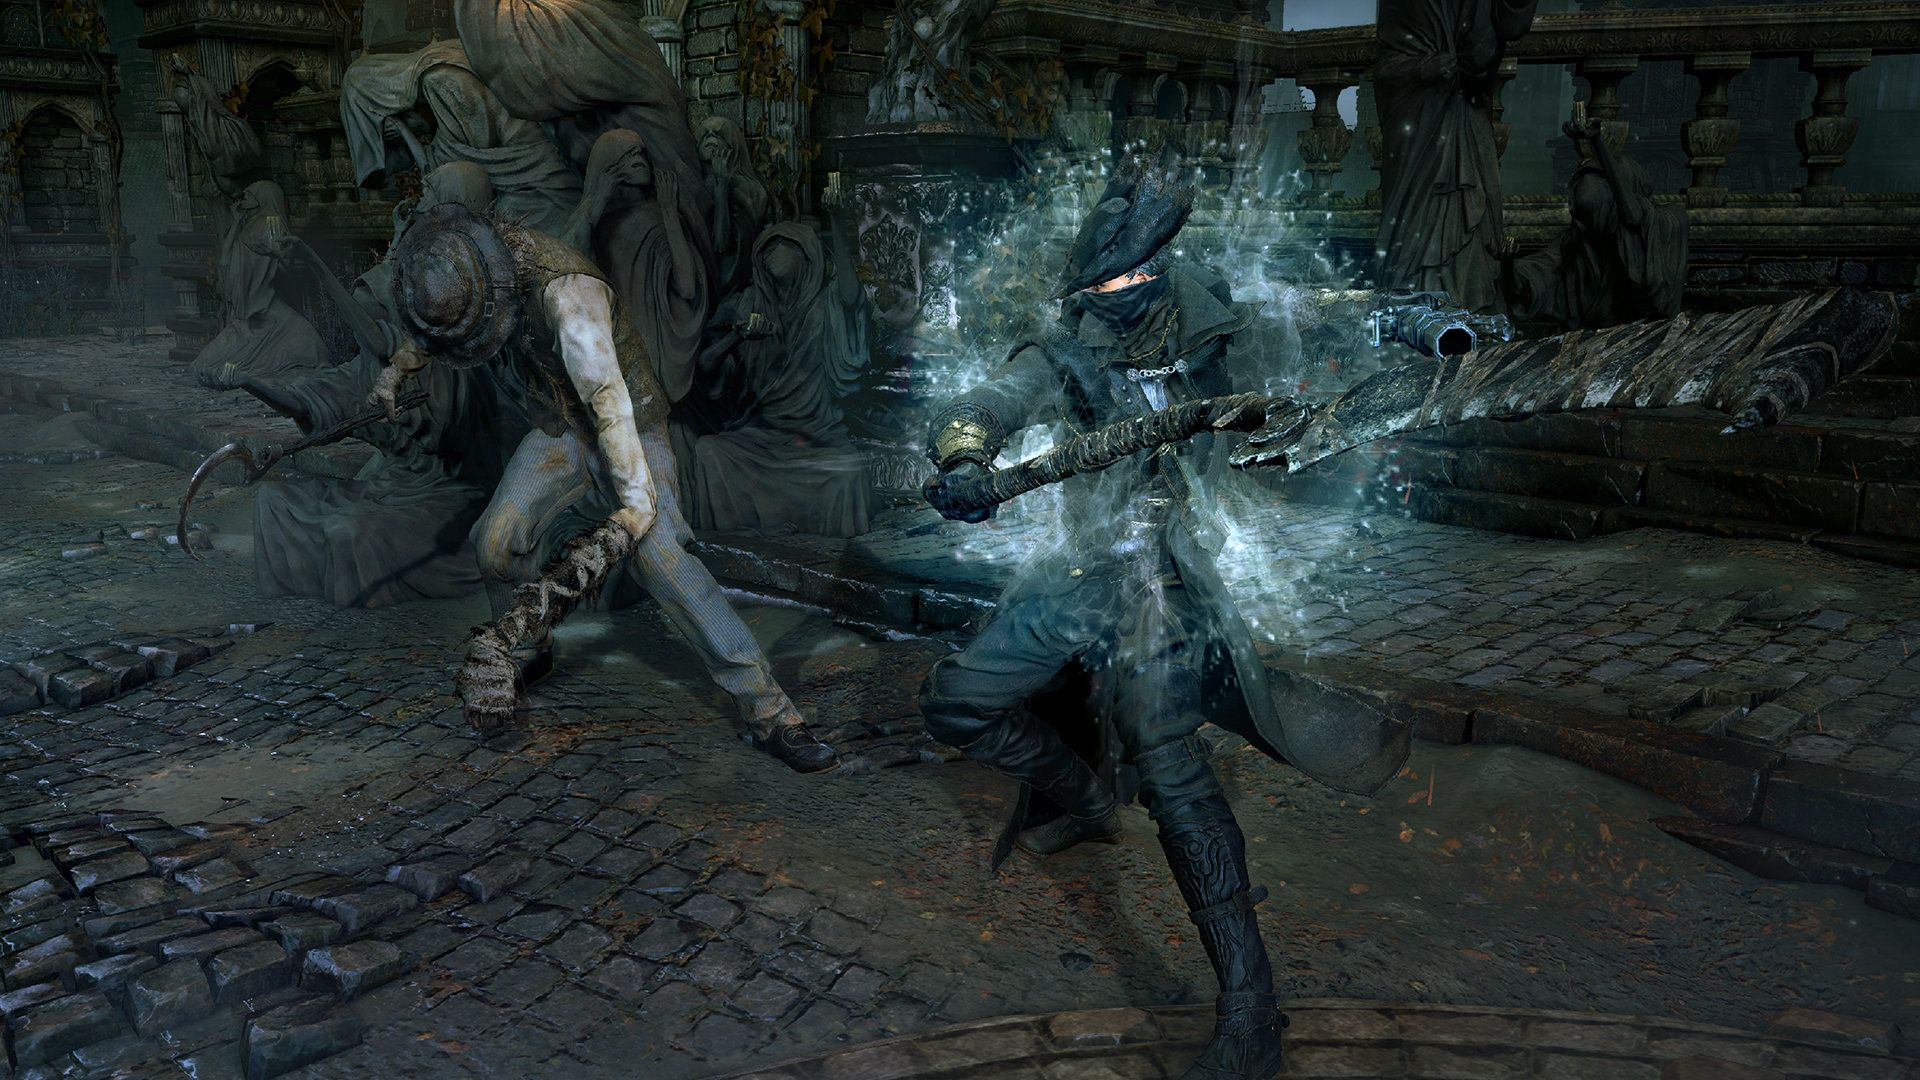 Bloodborne Patched To Run At 60 Fps On Regular Ps4 But With A Limitation In 2020 Bloodborne Ps4 Games Bloodborne Ps4